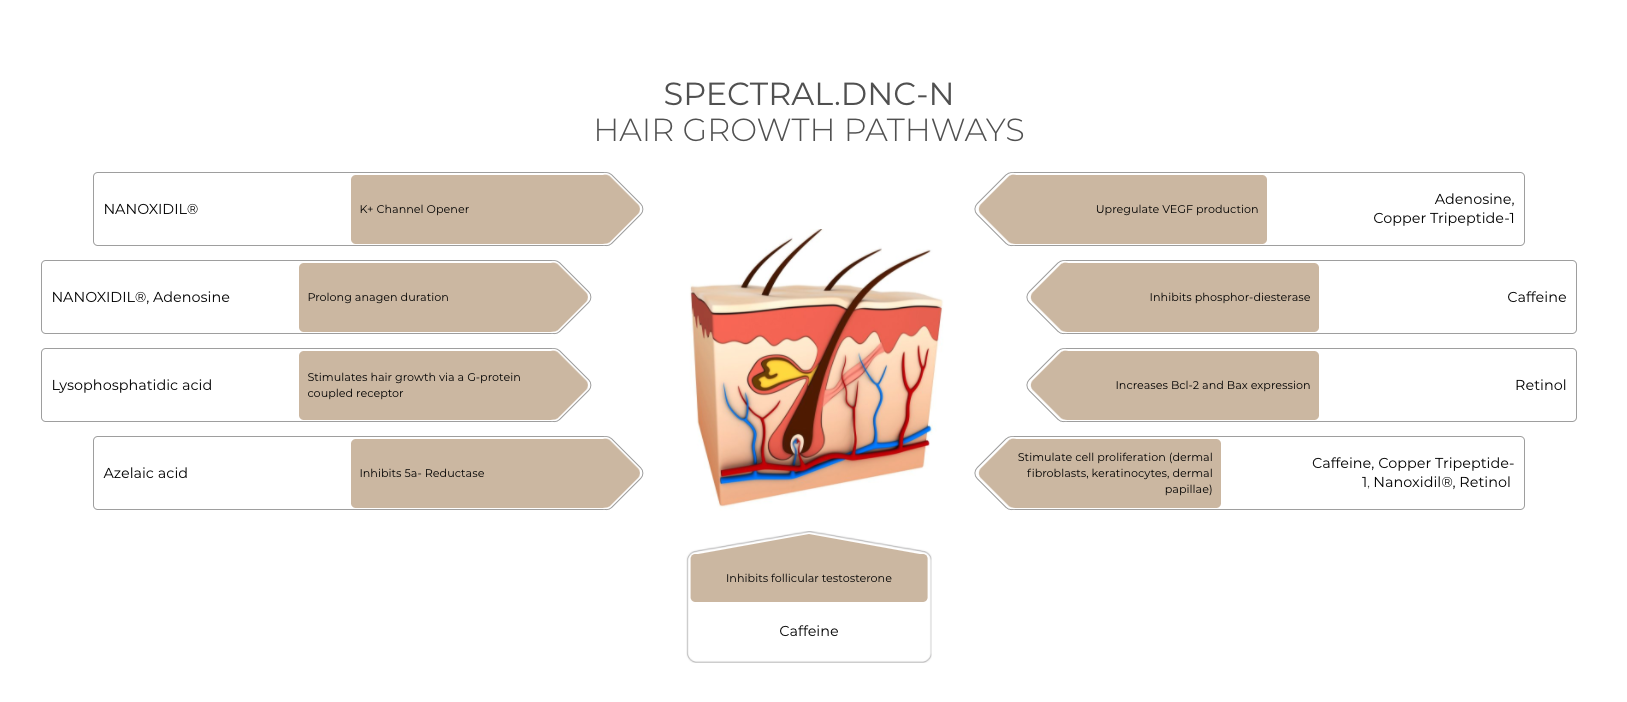 Spectral.DNC-N Study - Males With Thinning Hair & Alopecia (Product Efficacy)